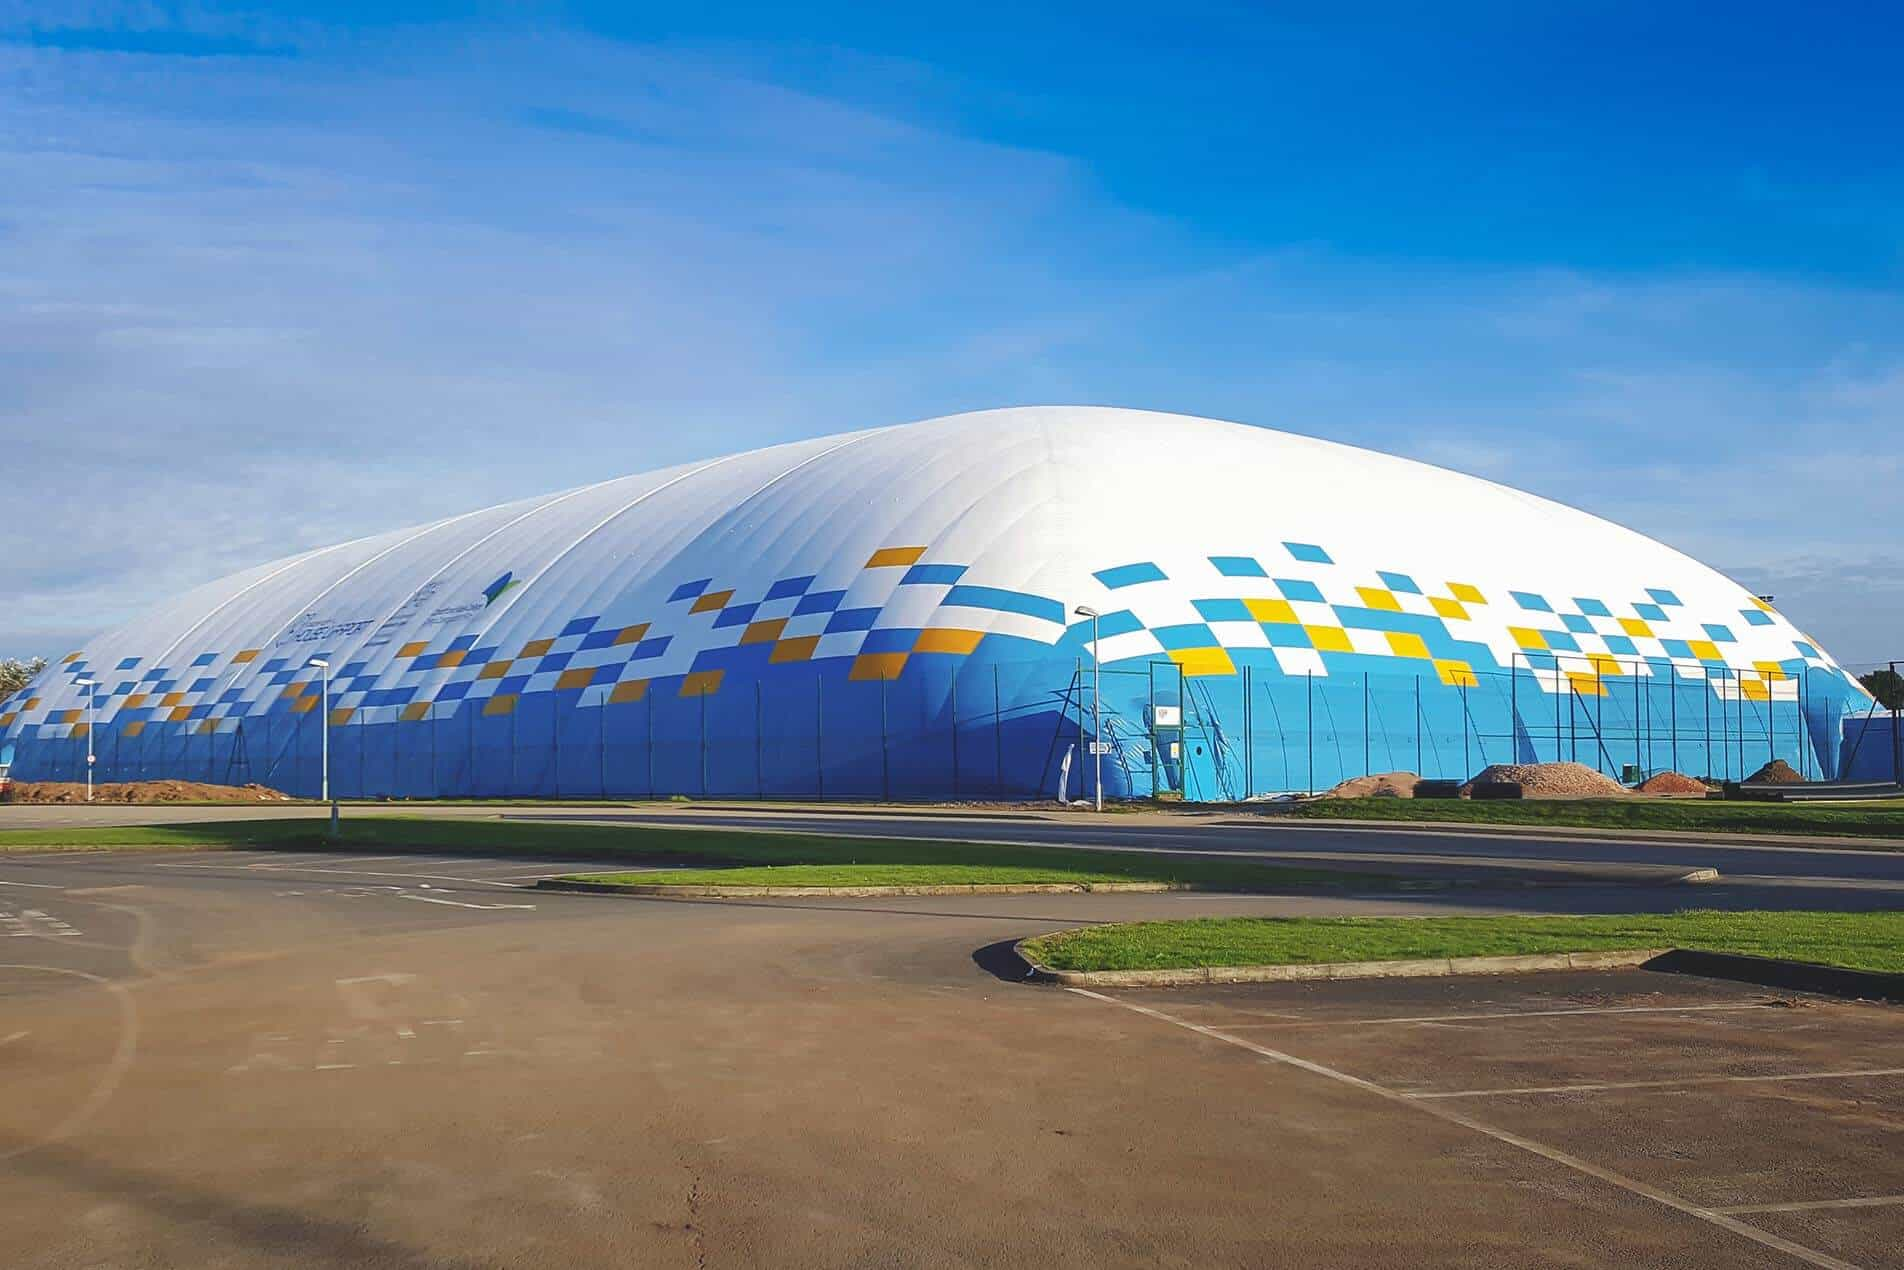 gallery-cardiff-air-dome